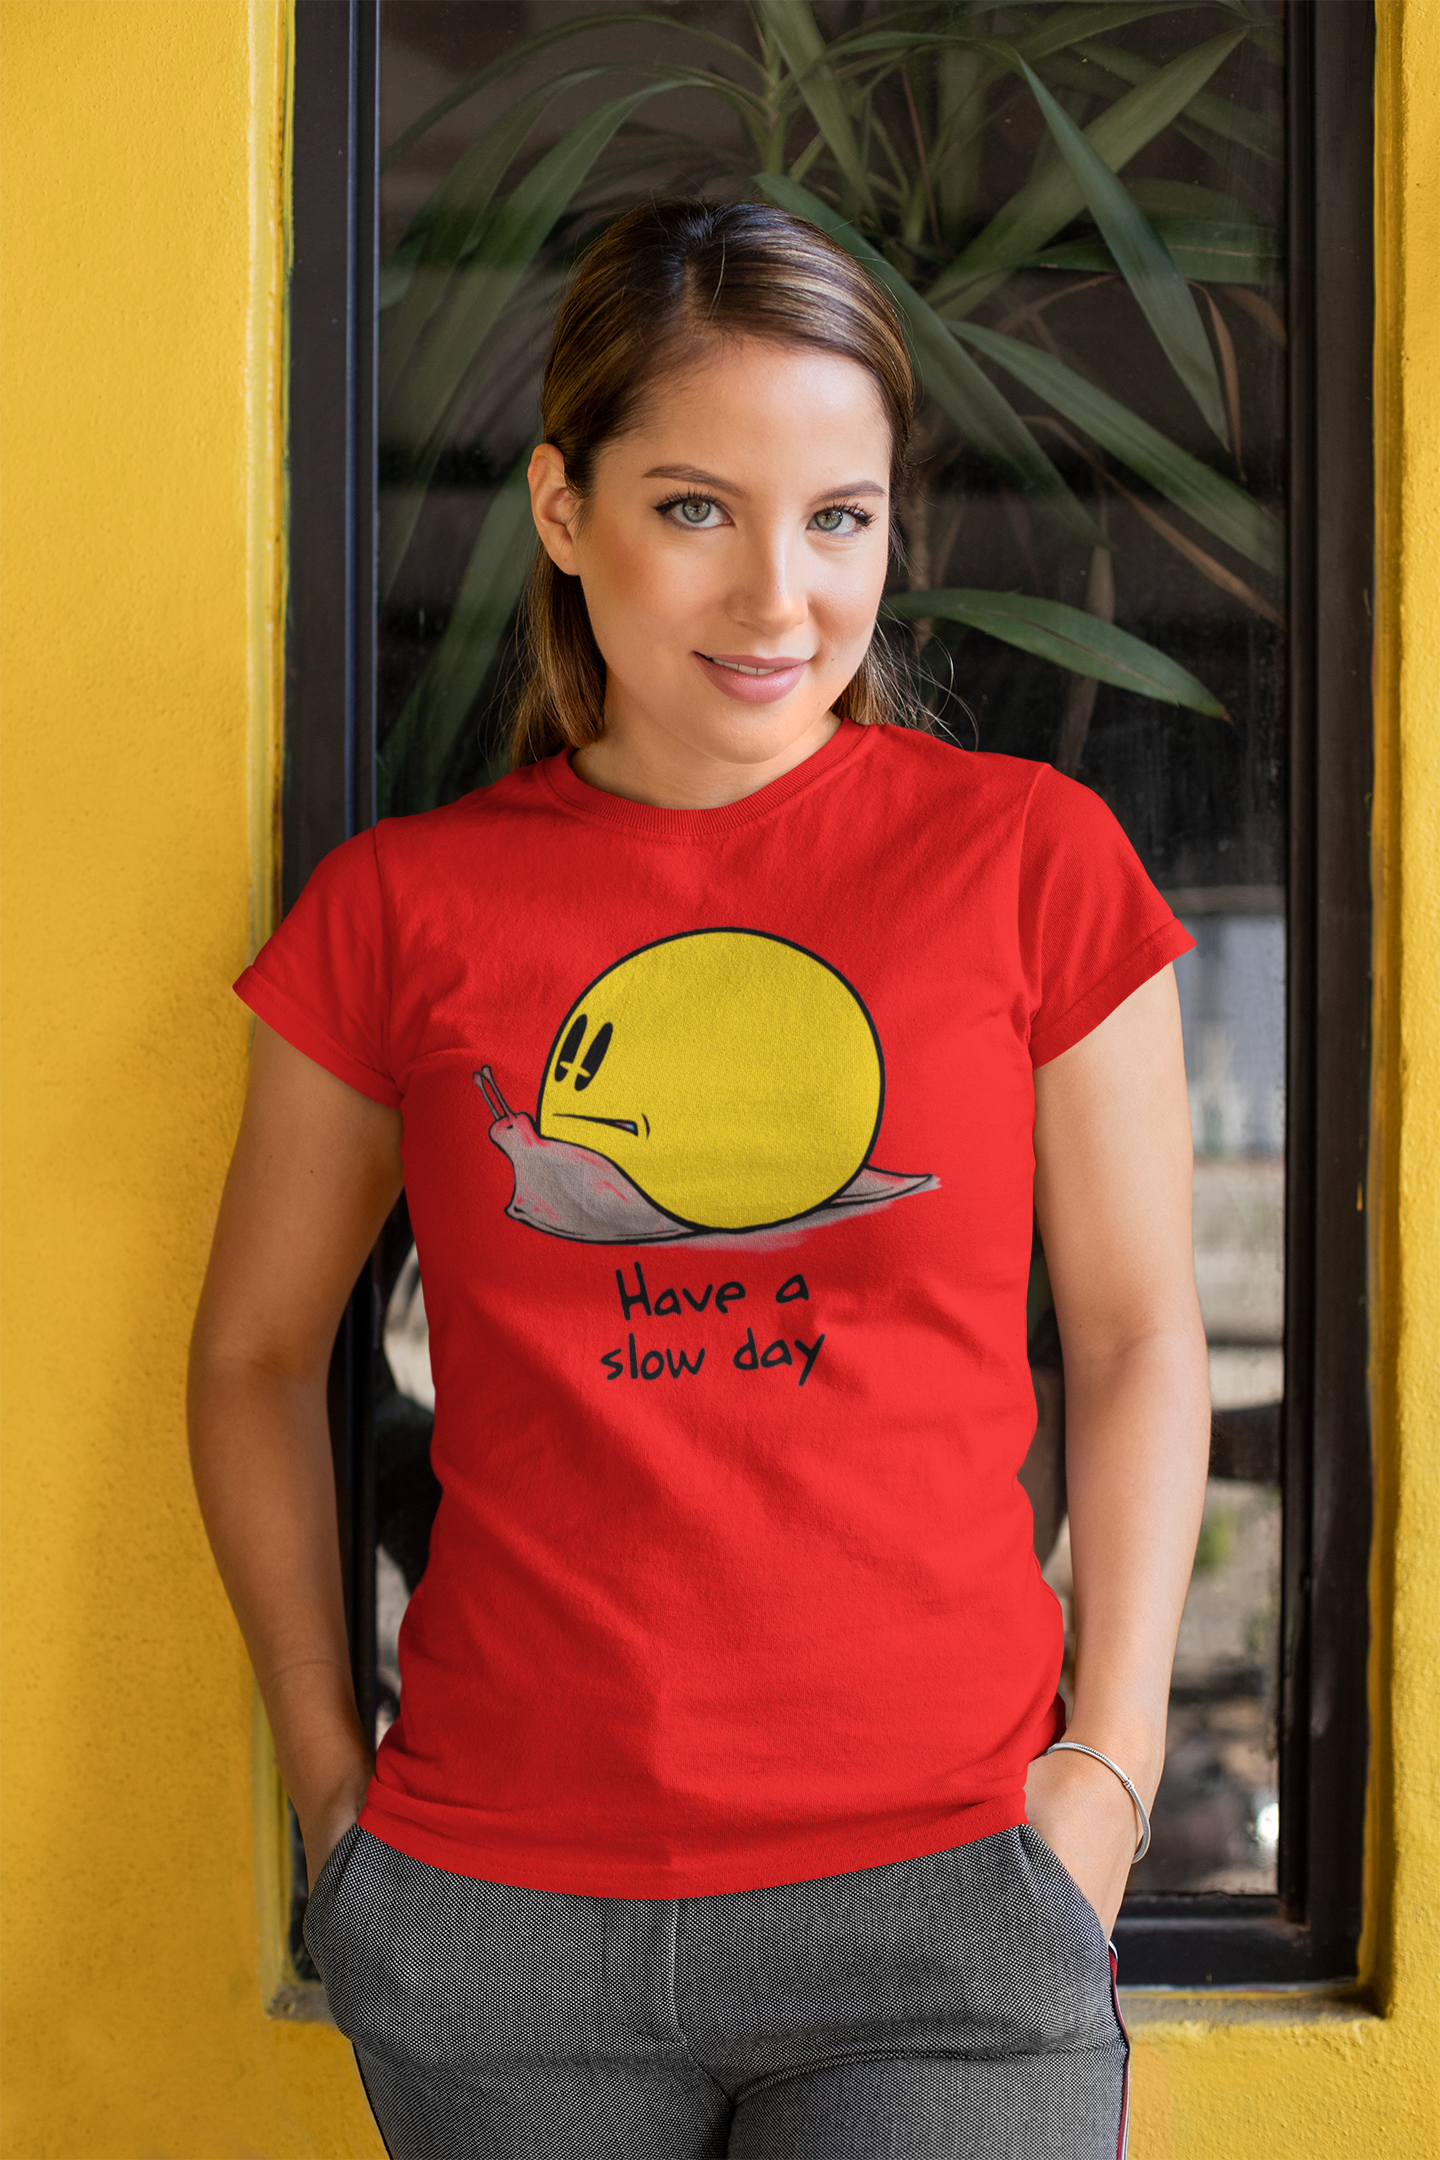 #LOL T-Shirts for Women - Have A Slow Day